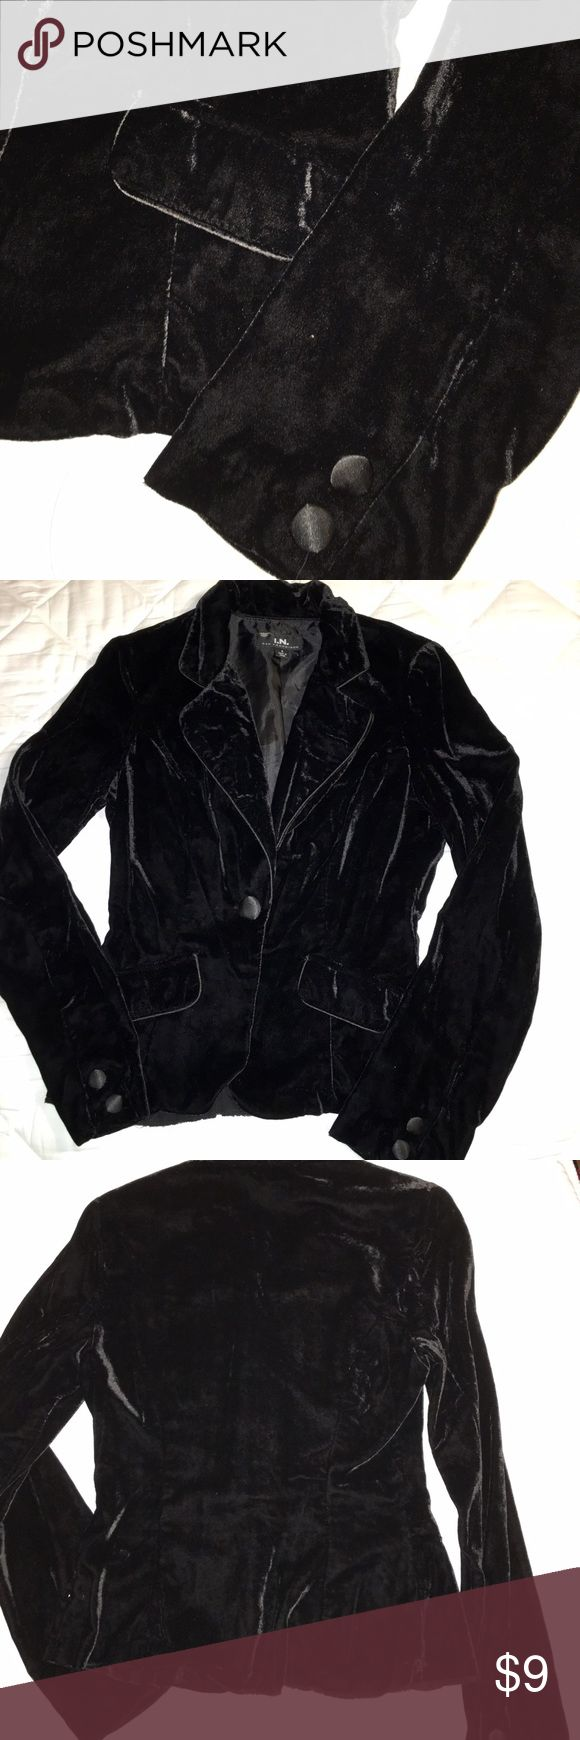 Black Velvet Jacket This jacket is more fitted, and also is a lighter version of velvet. The lining and material are not as thick as typical velvet- offering a cooler option. Please ask if you have any questions! I am negotiable, and will bundle. Happy shopping! I.N. San Francisco Jackets & Coats Blazers